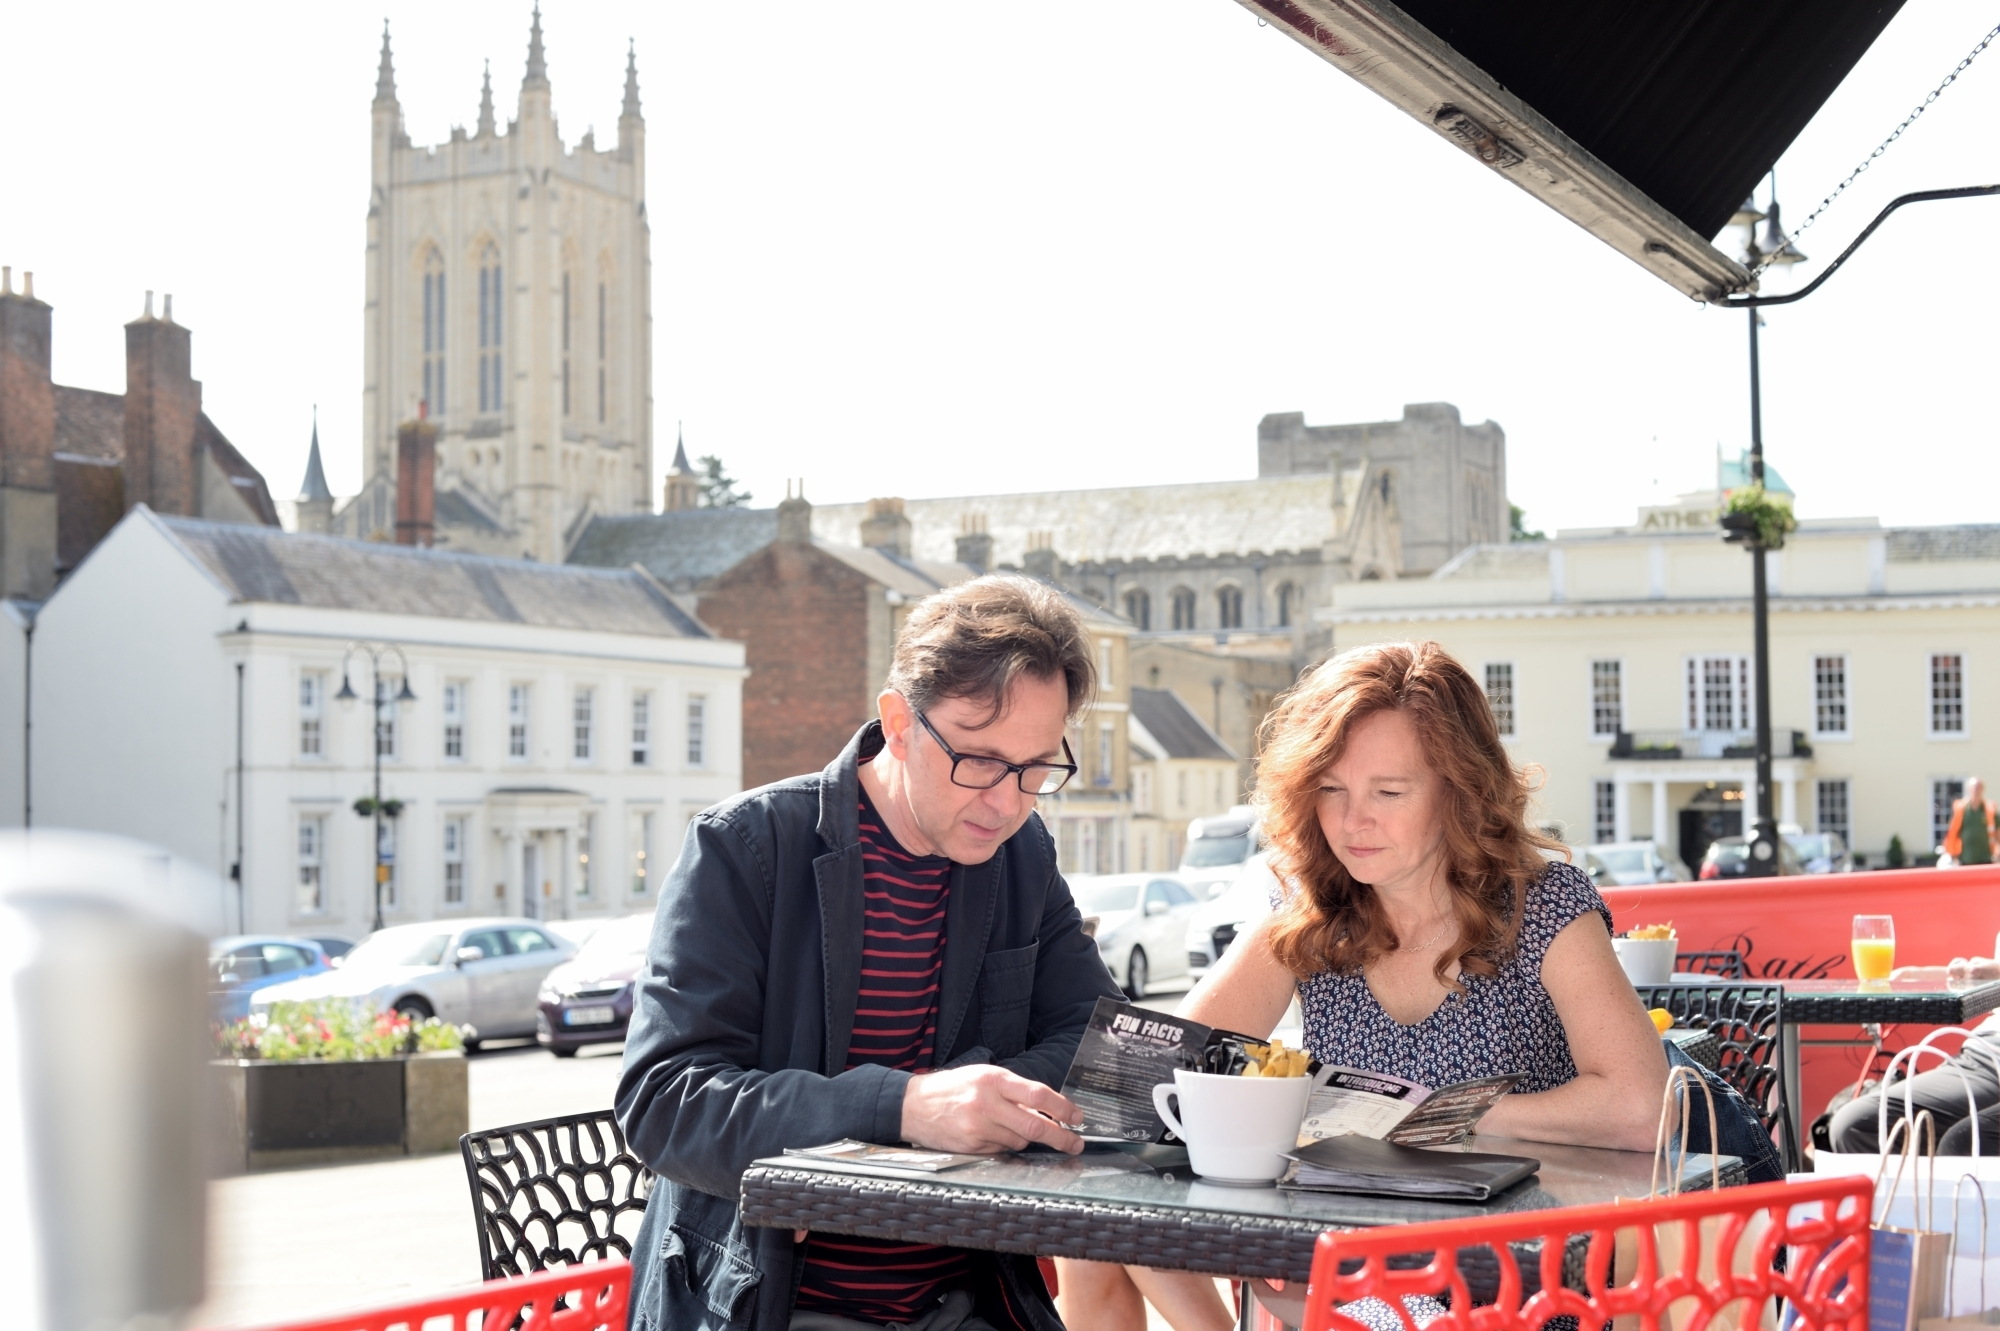 48 hours in Bury St Edmunds for Foodies